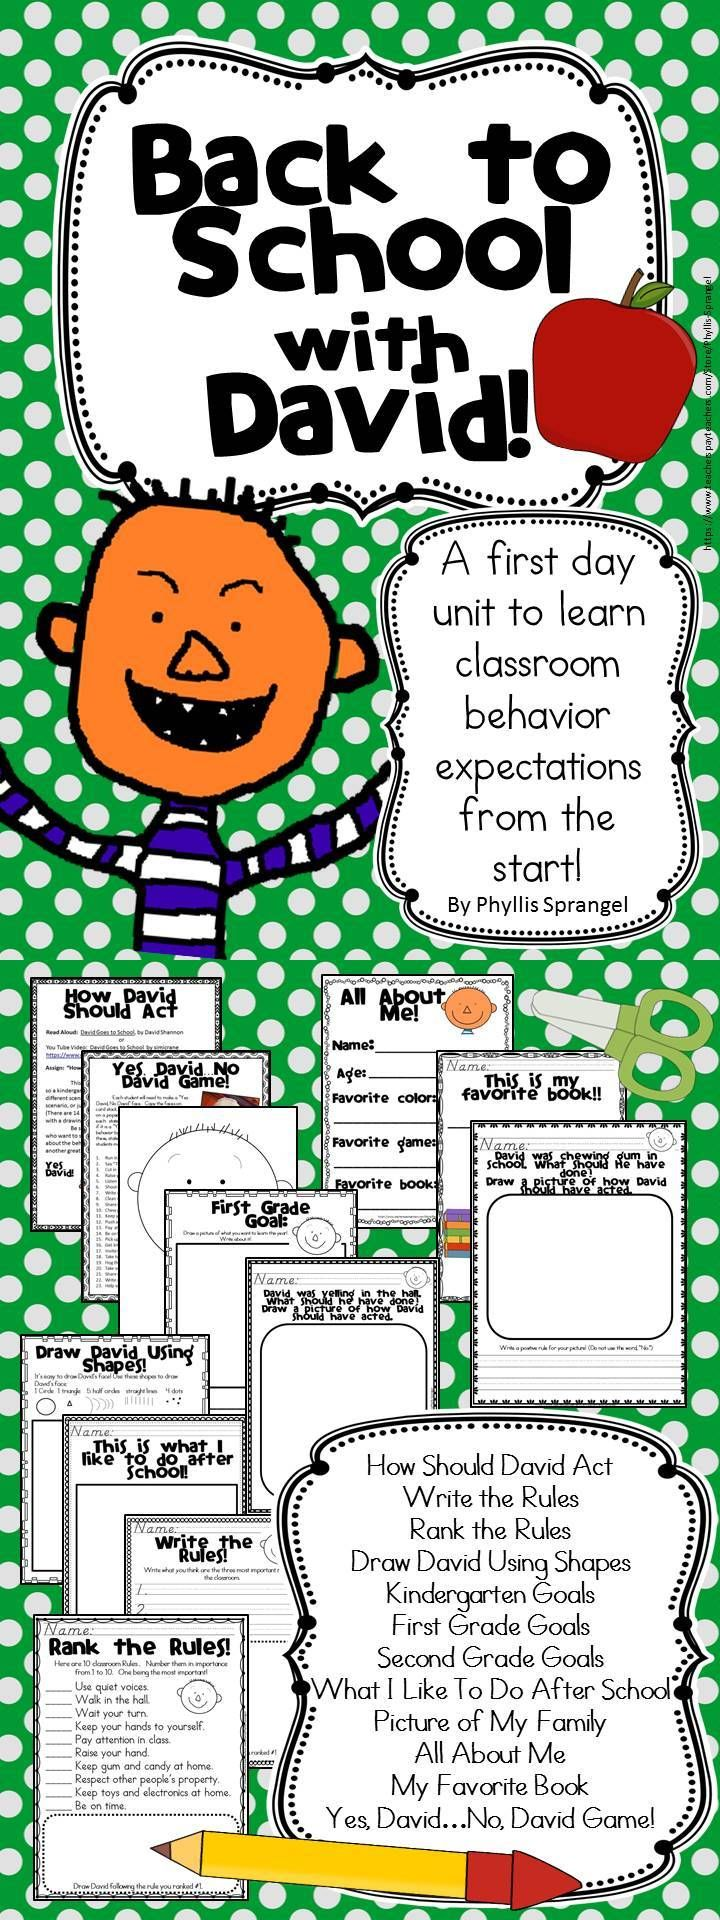 worksheet A Bad Case Of Stripes Worksheets Luizah Worksheet And – A Bad Case of Stripes Worksheets